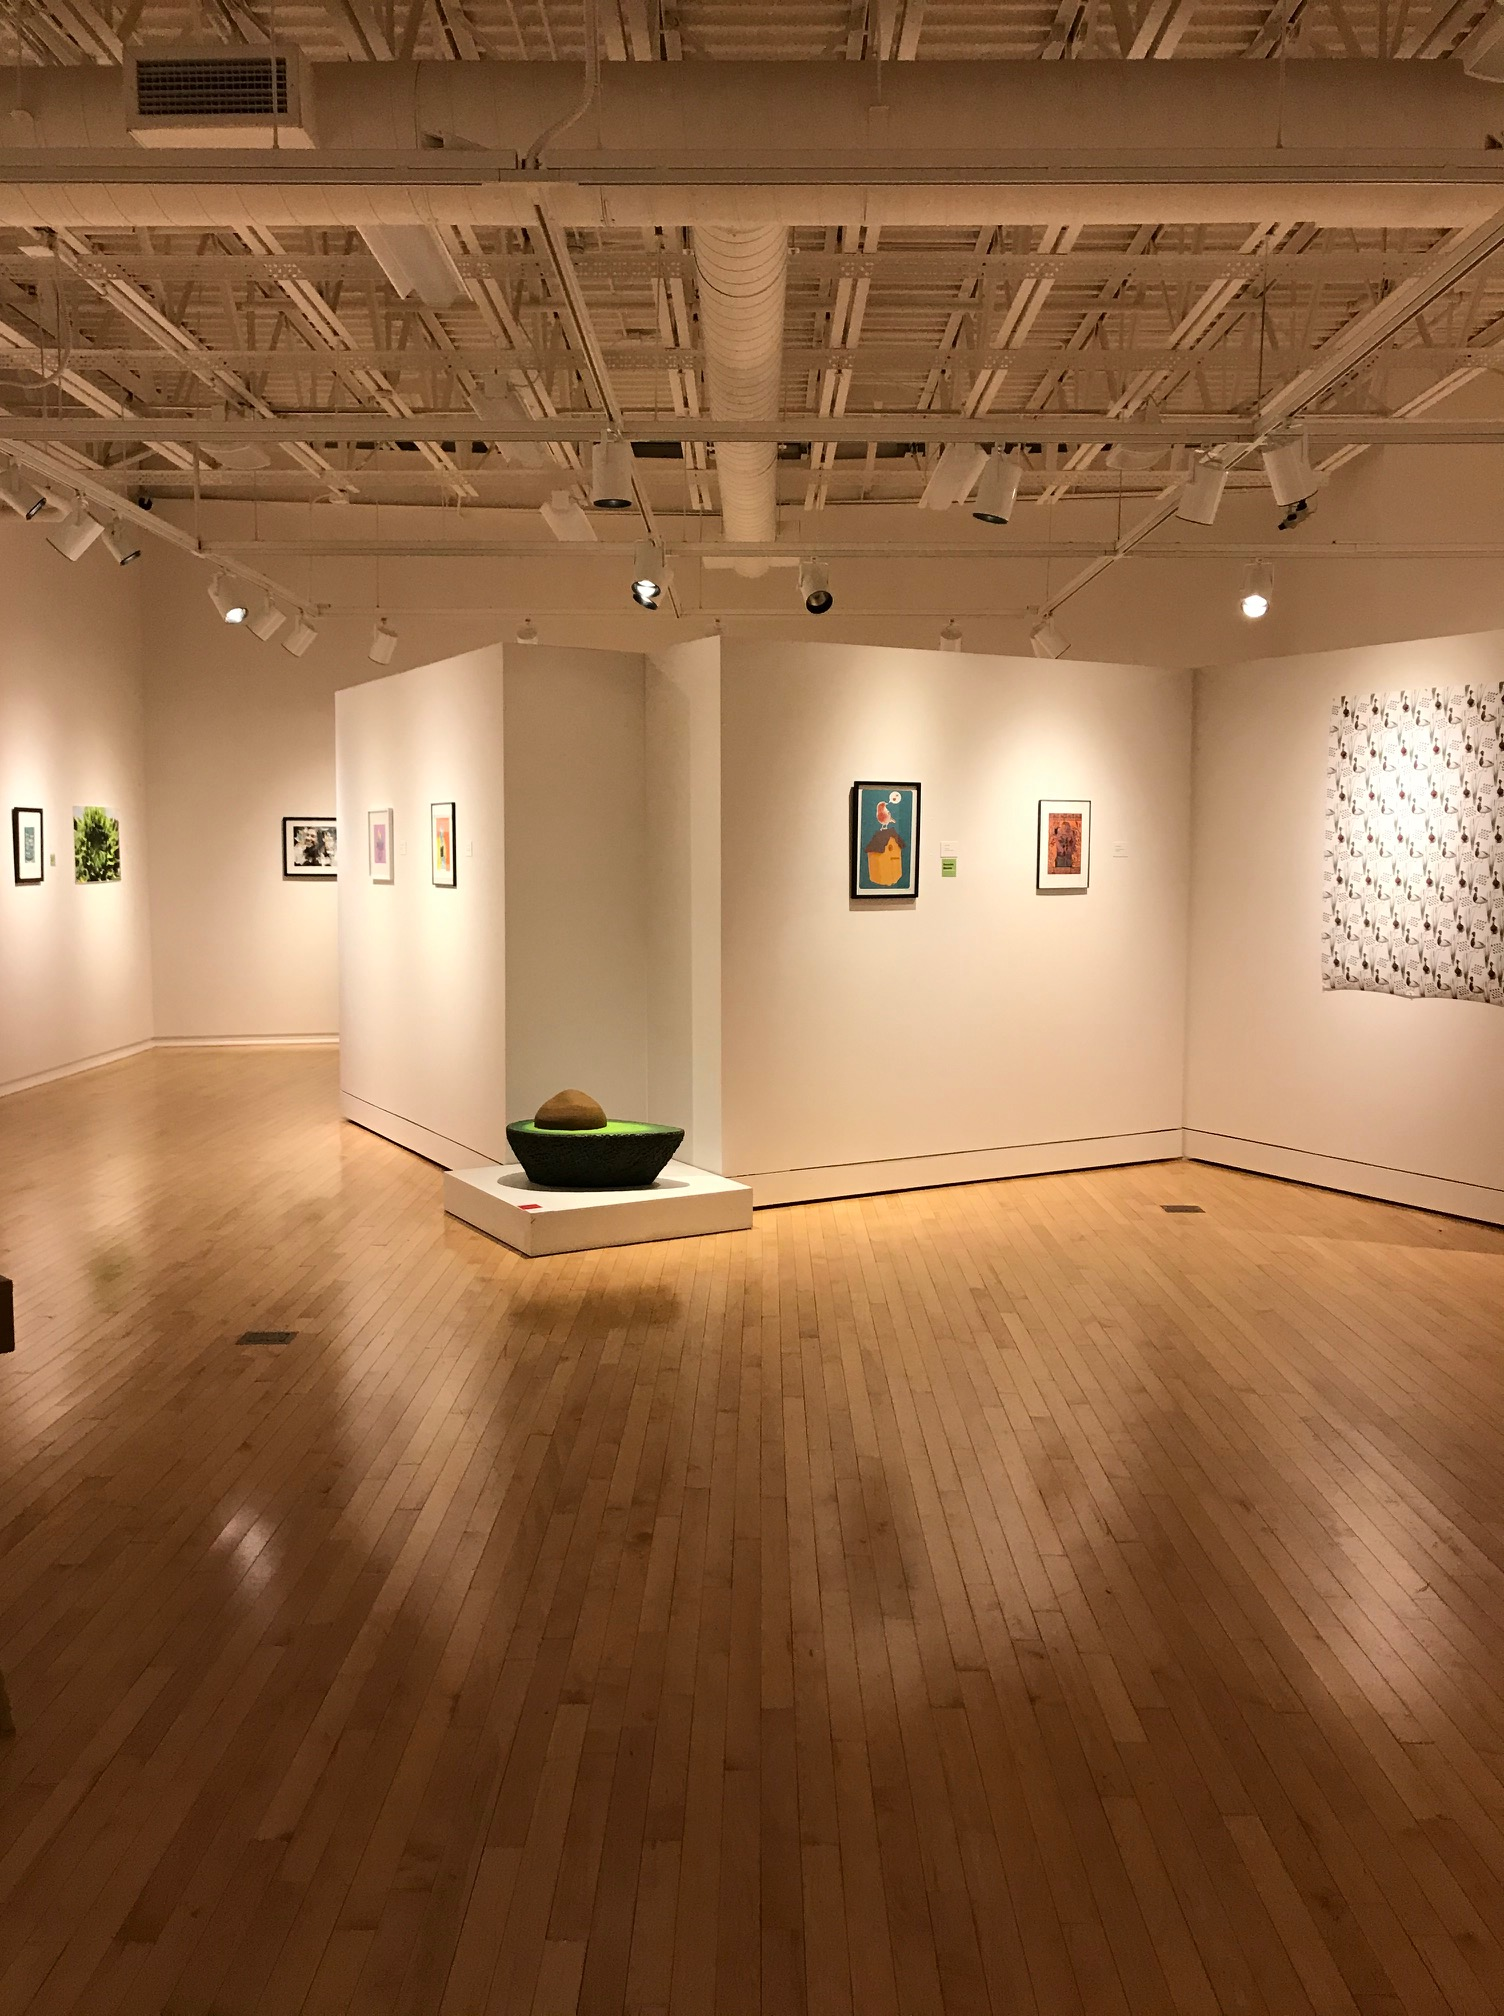 An image of work in a gallery.